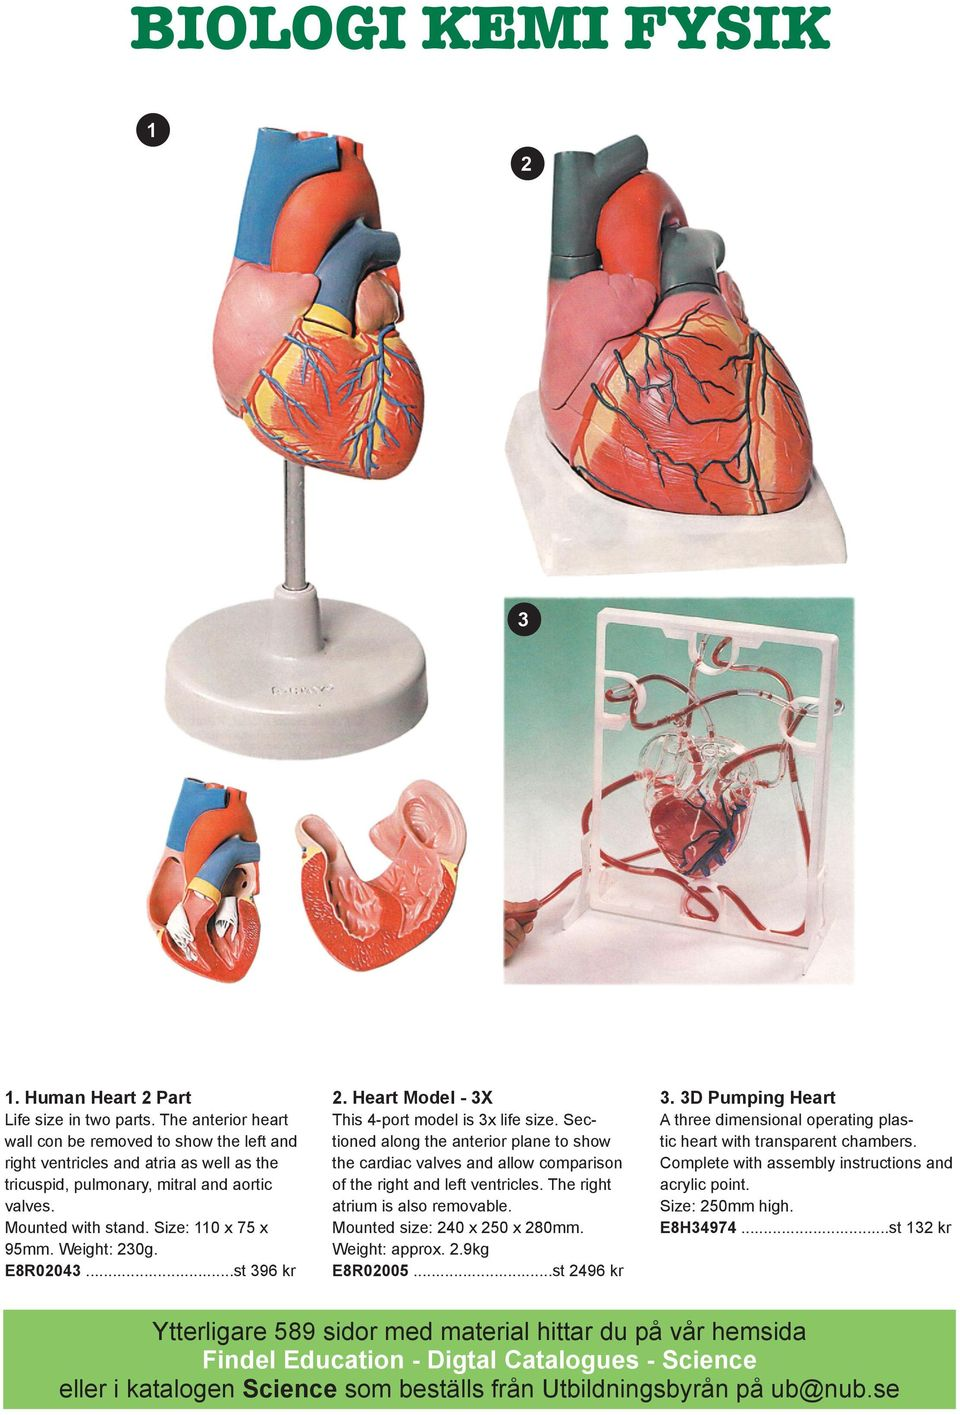 Weight: 230g. E8R02043...st 396 kr 2. Heart Model - 3X This 4-port model is 3x life size.